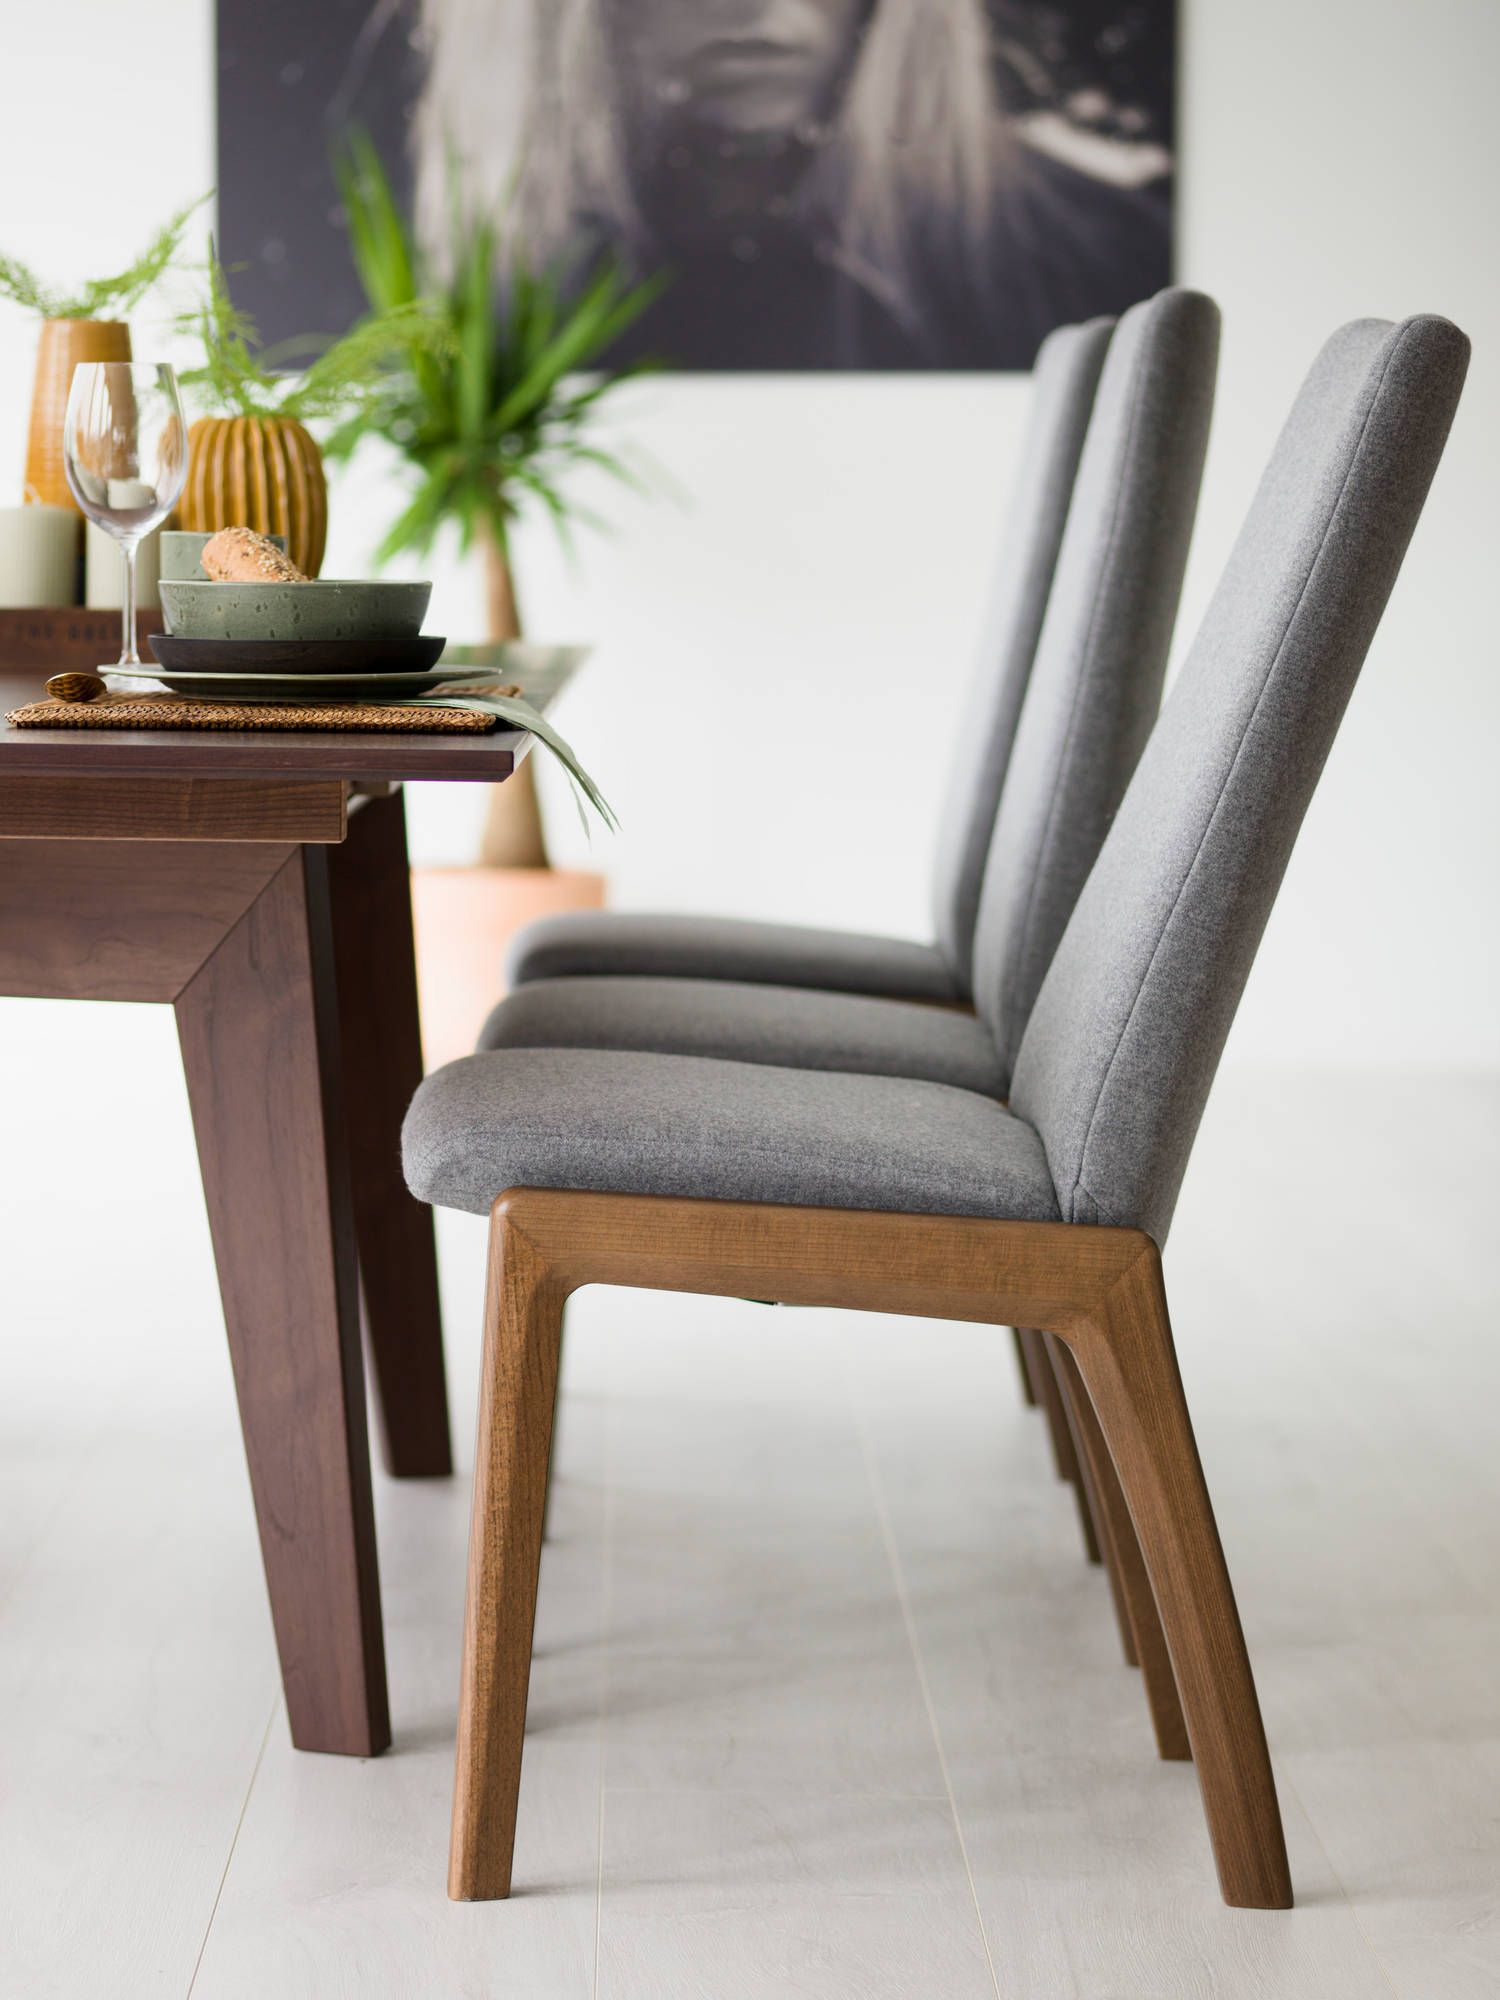 Stressless Rosemary Stressless By Ekornes Dining Chair An Easy Reclining